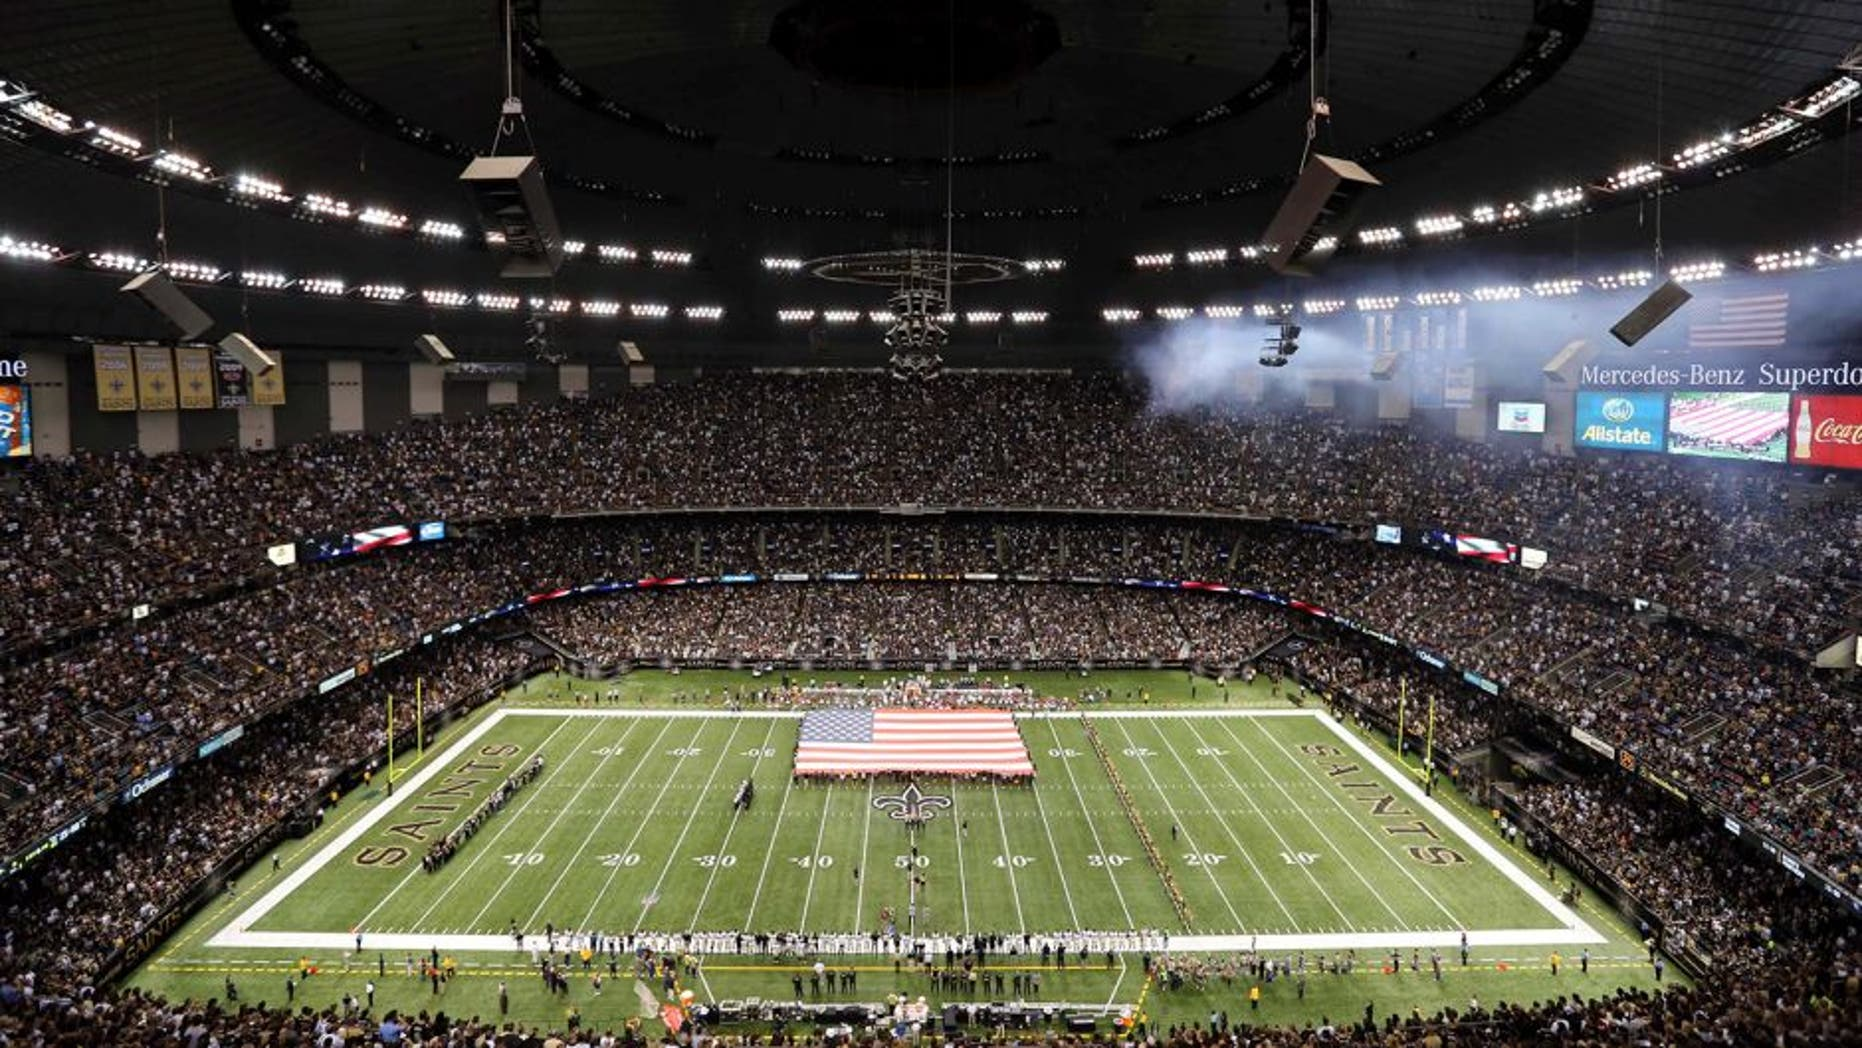 Sep 22, 2013; New Orleans, LA, USA; General view of the Mercedes-Benz Superdome before the New Orleans Saints play the Arizona Cardinals. Mandatory Credit: Chuck Cook-USA TODAY Sports